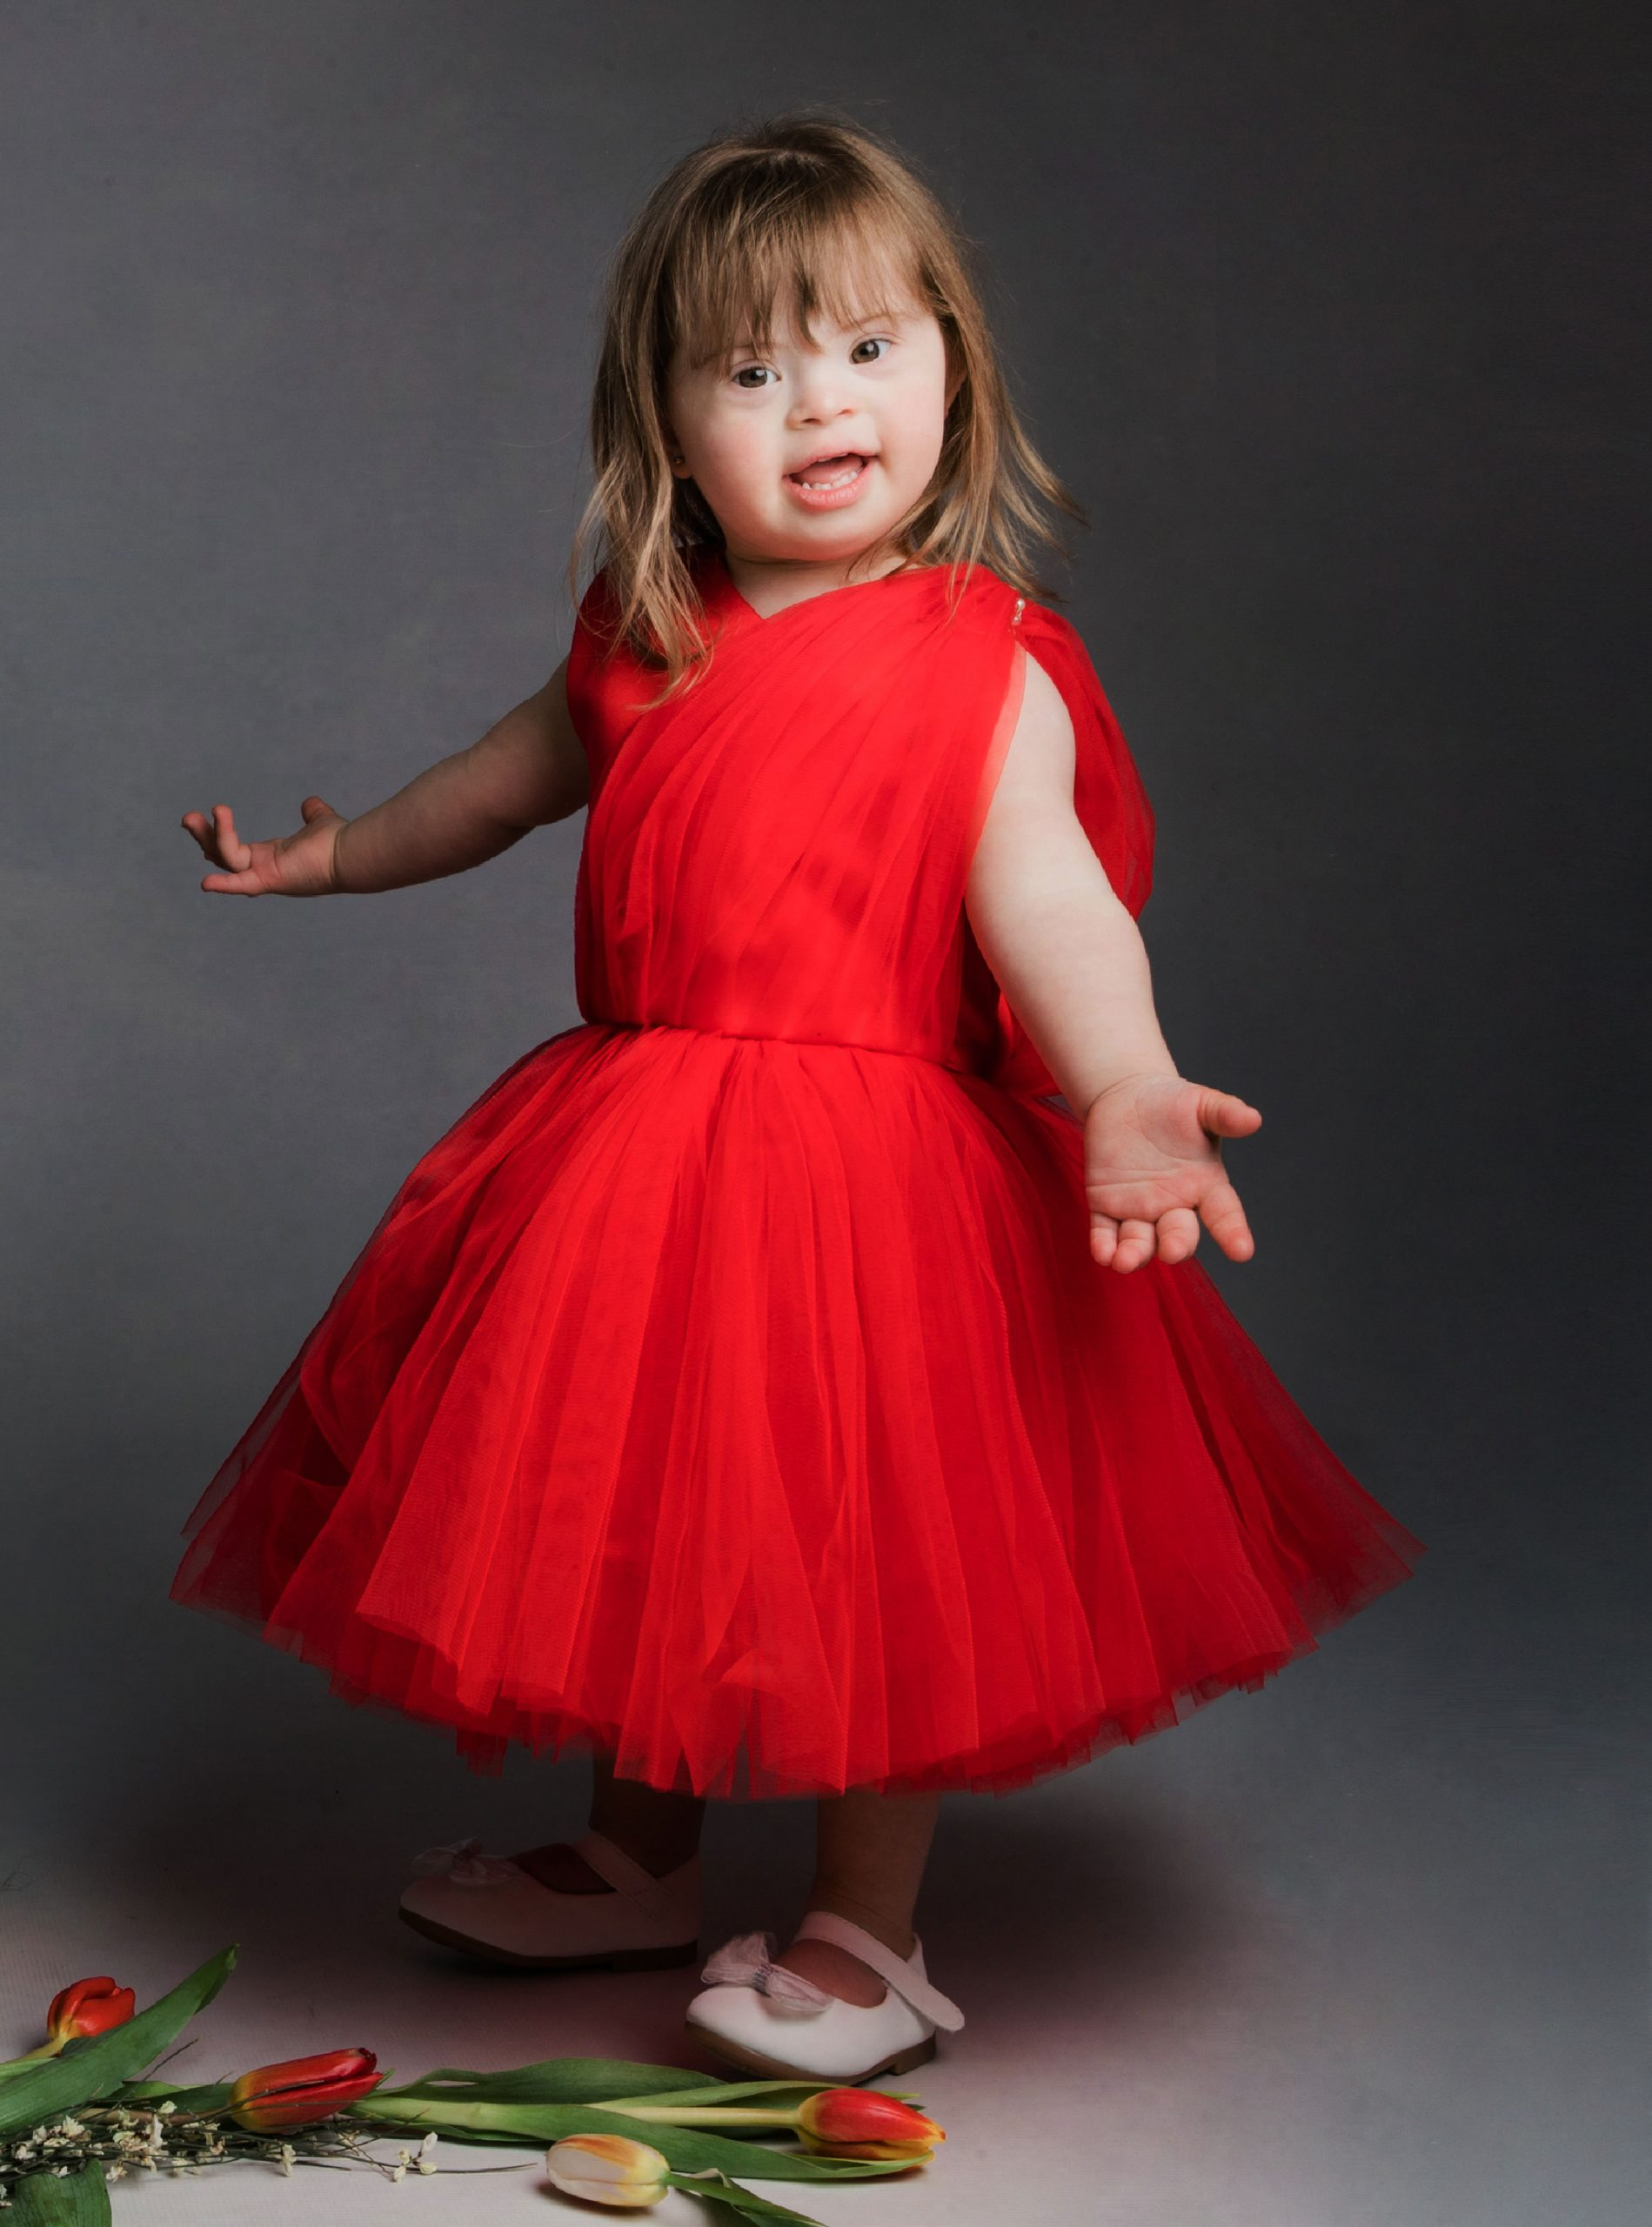 Little girl wearing a red tulle dress